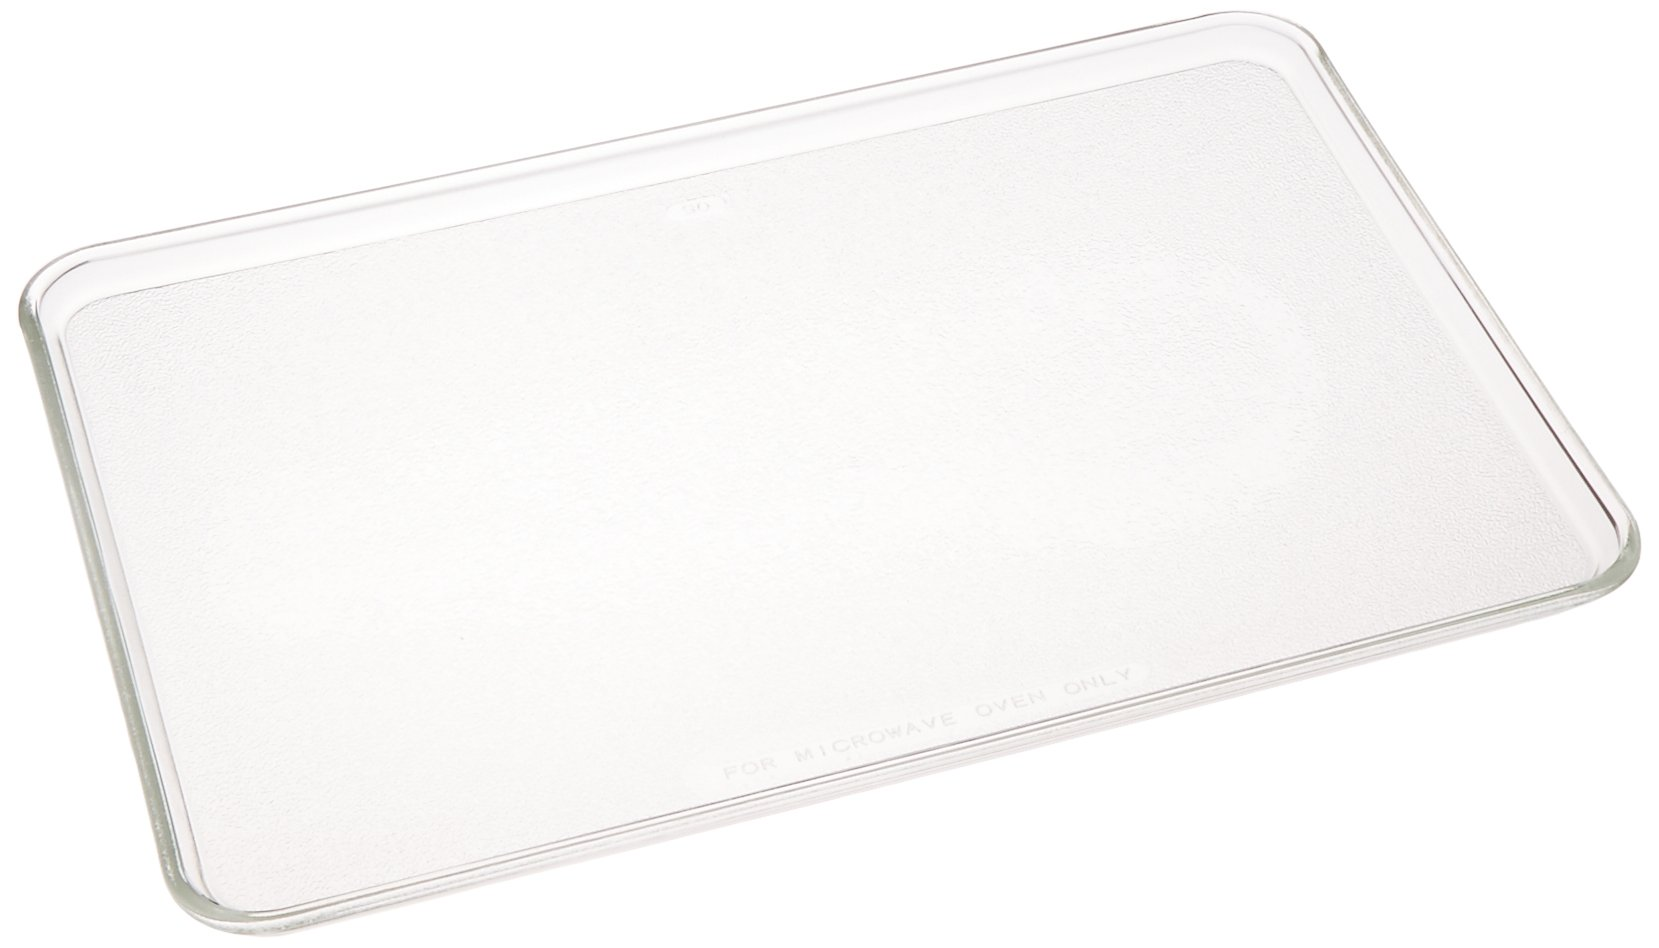 General Electric WB48X194 Microwave Glass Tray